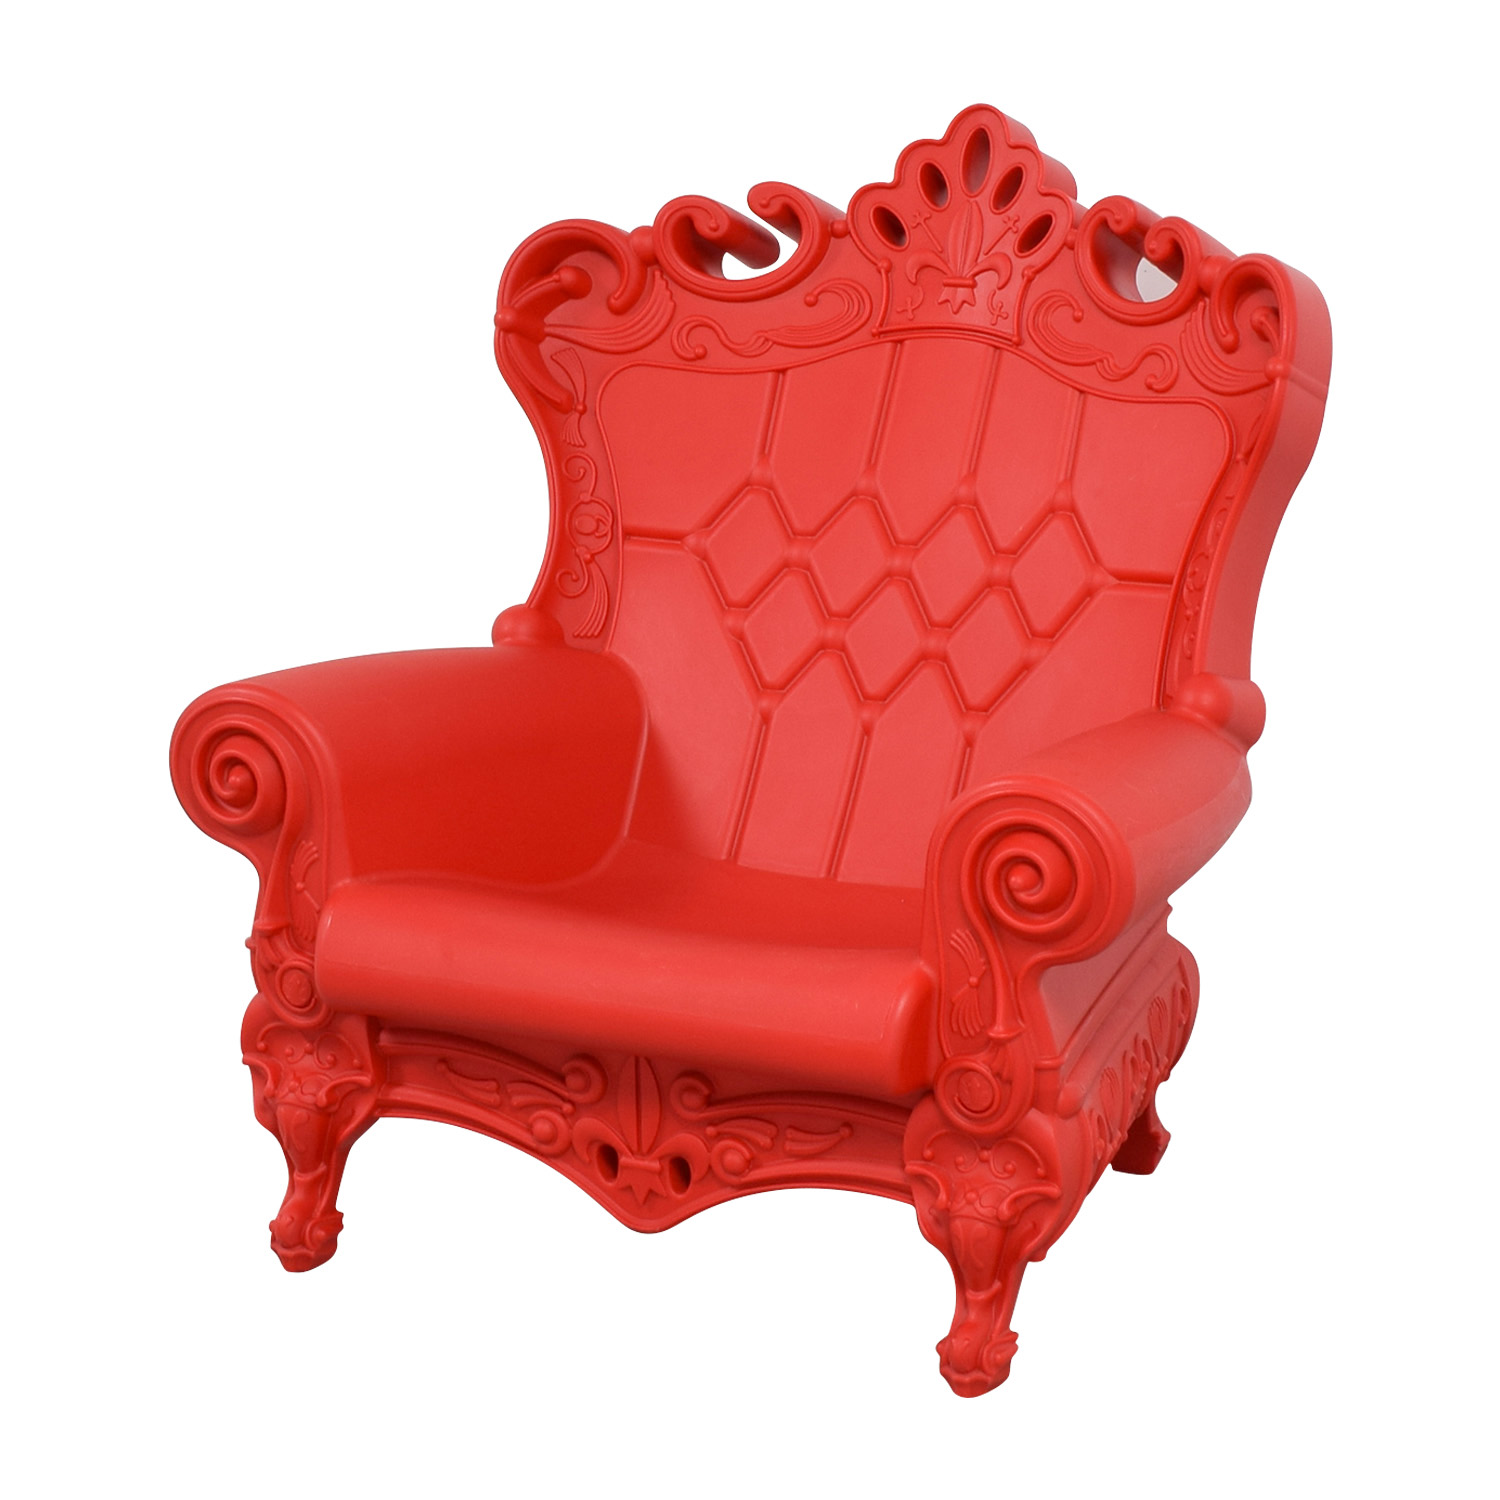 Linvin Linvin Queen of Love Chair Red Passion used